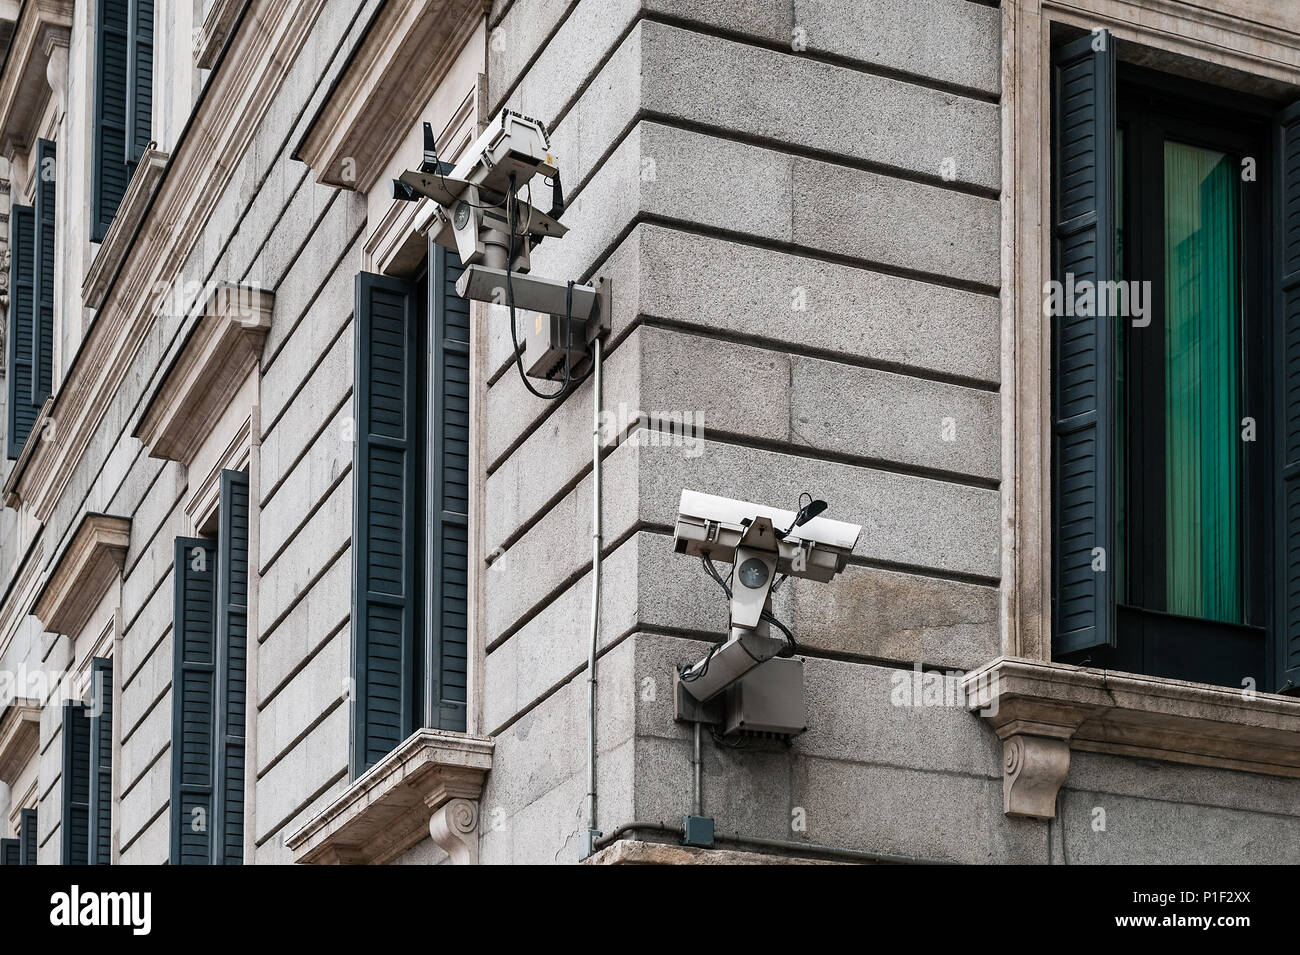 Security video cameras mounted on building exterior, Madrid, Spain. - Stock Image